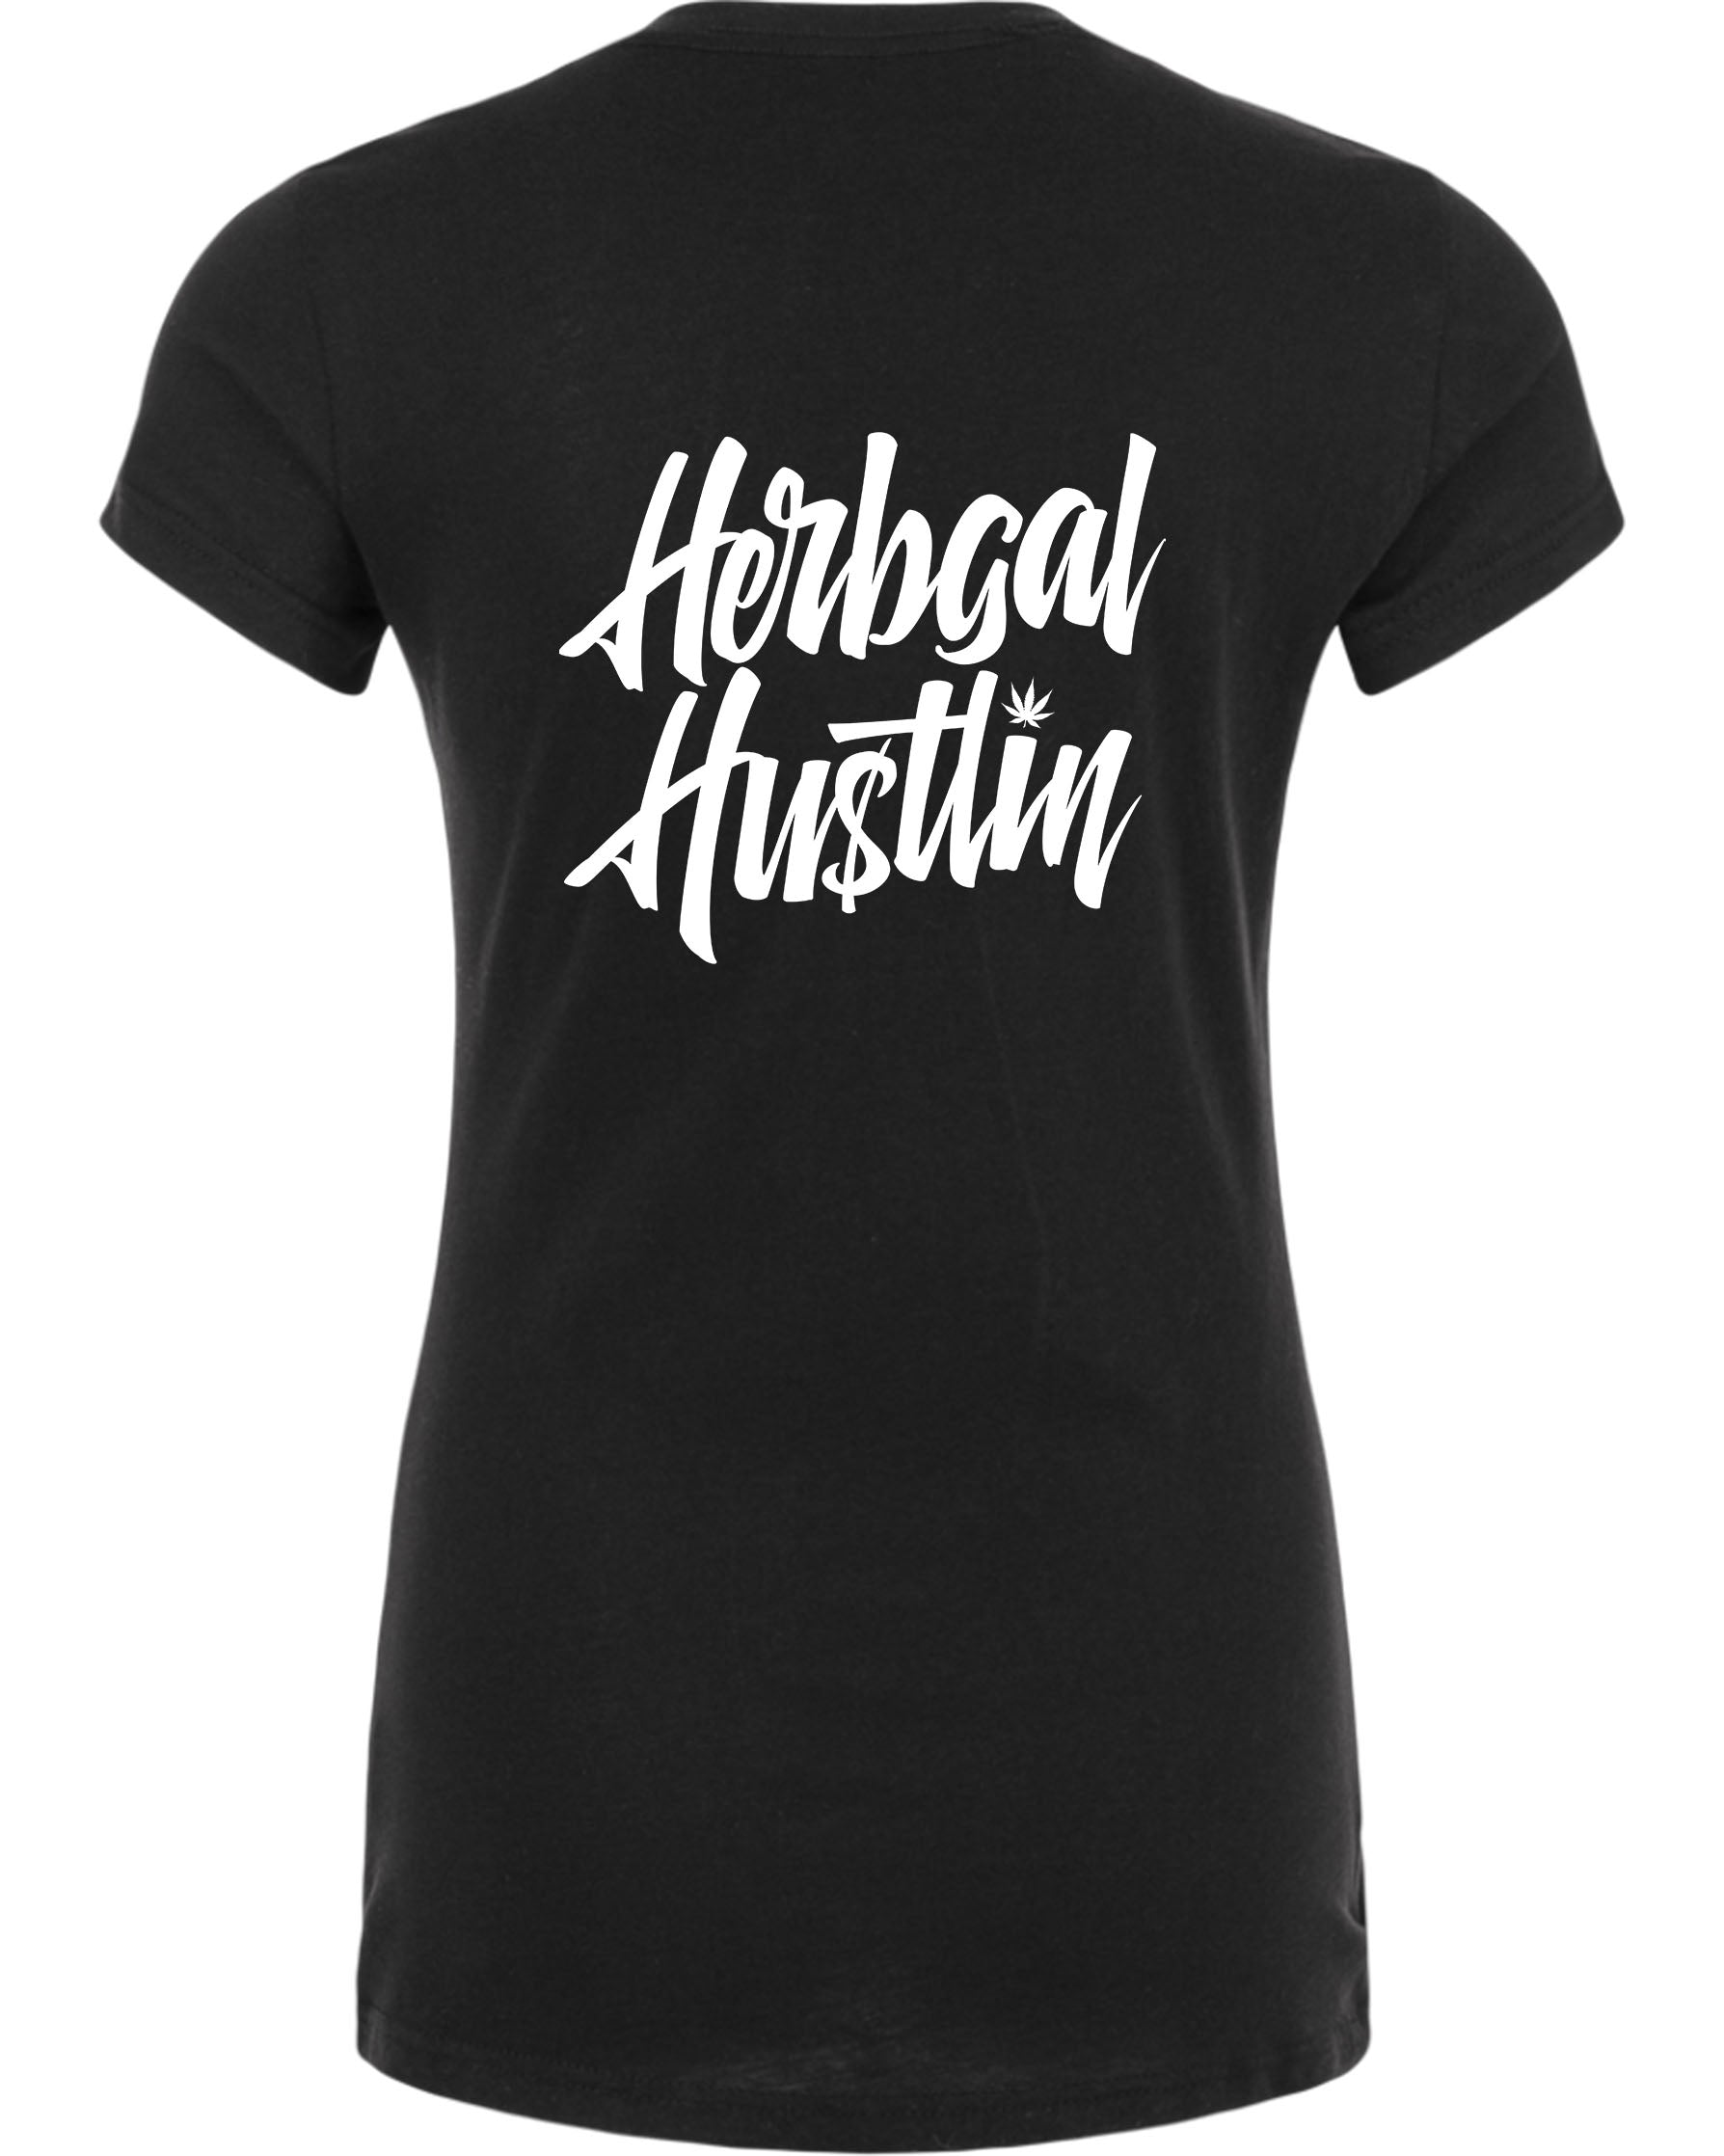 Herbgal Hustlin Script V Neck Tee - Black/White - Front